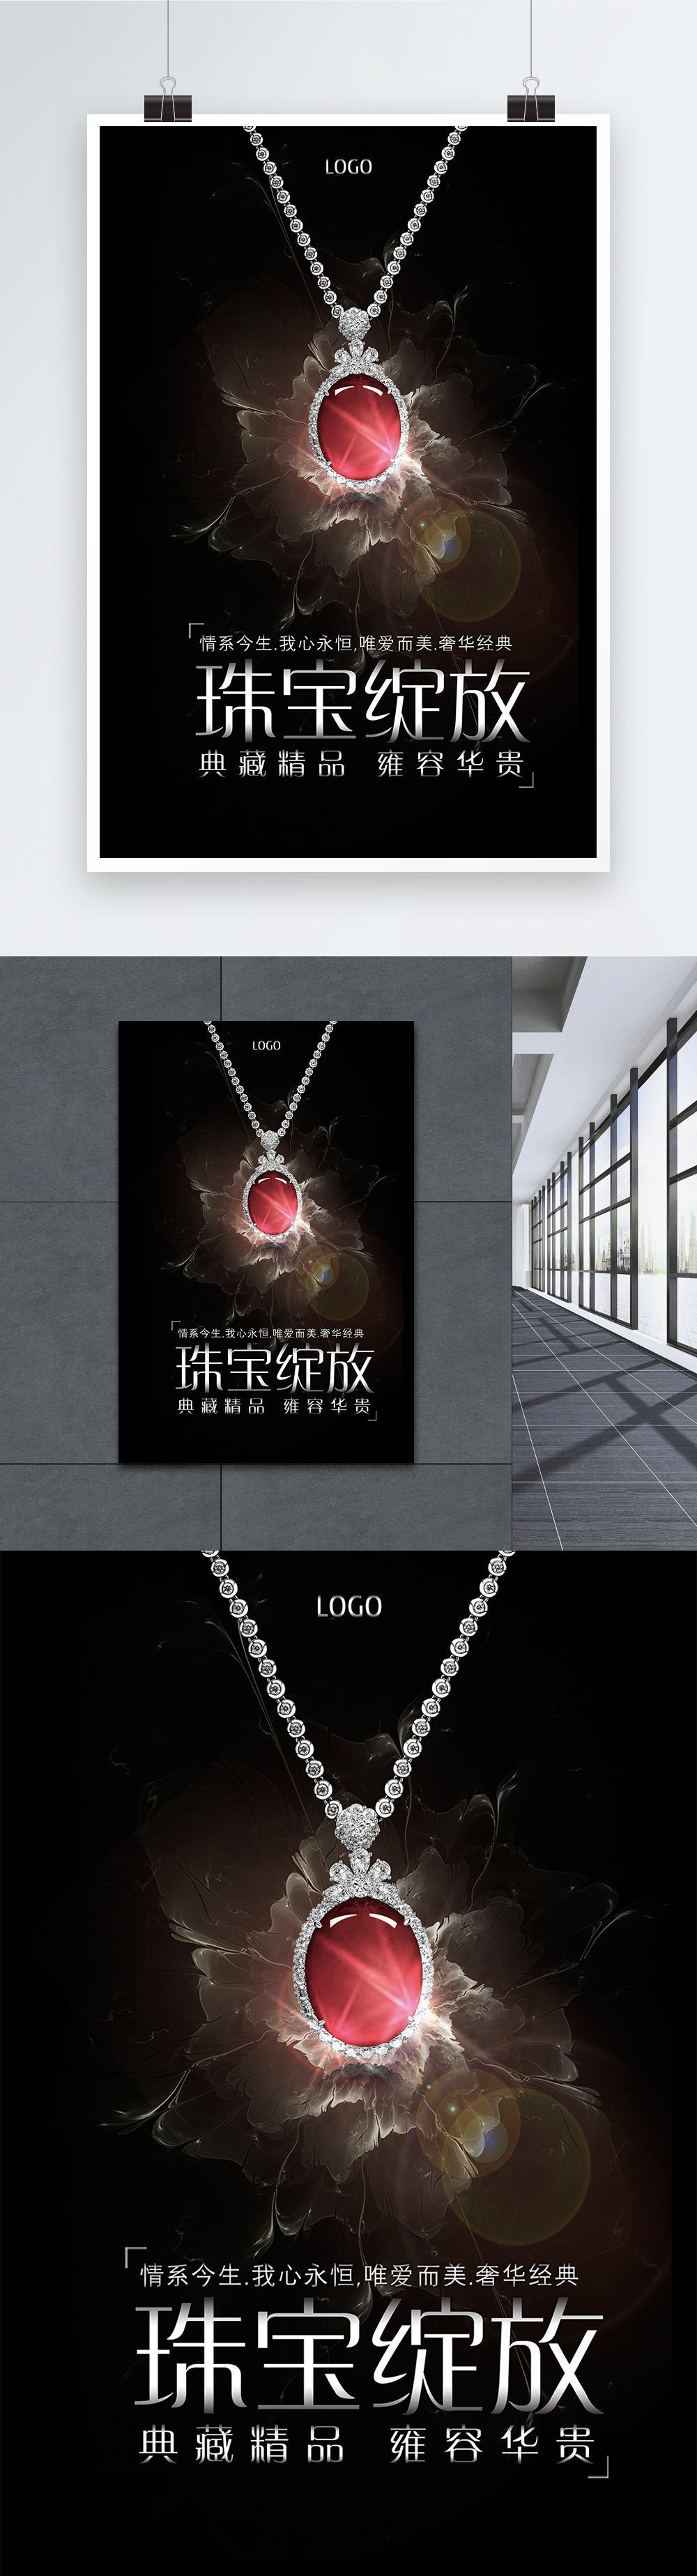 Exquisite Atmosphere Necklace Jewelry Posters Template Image Picture Free Download 400196023 Lovepik Com